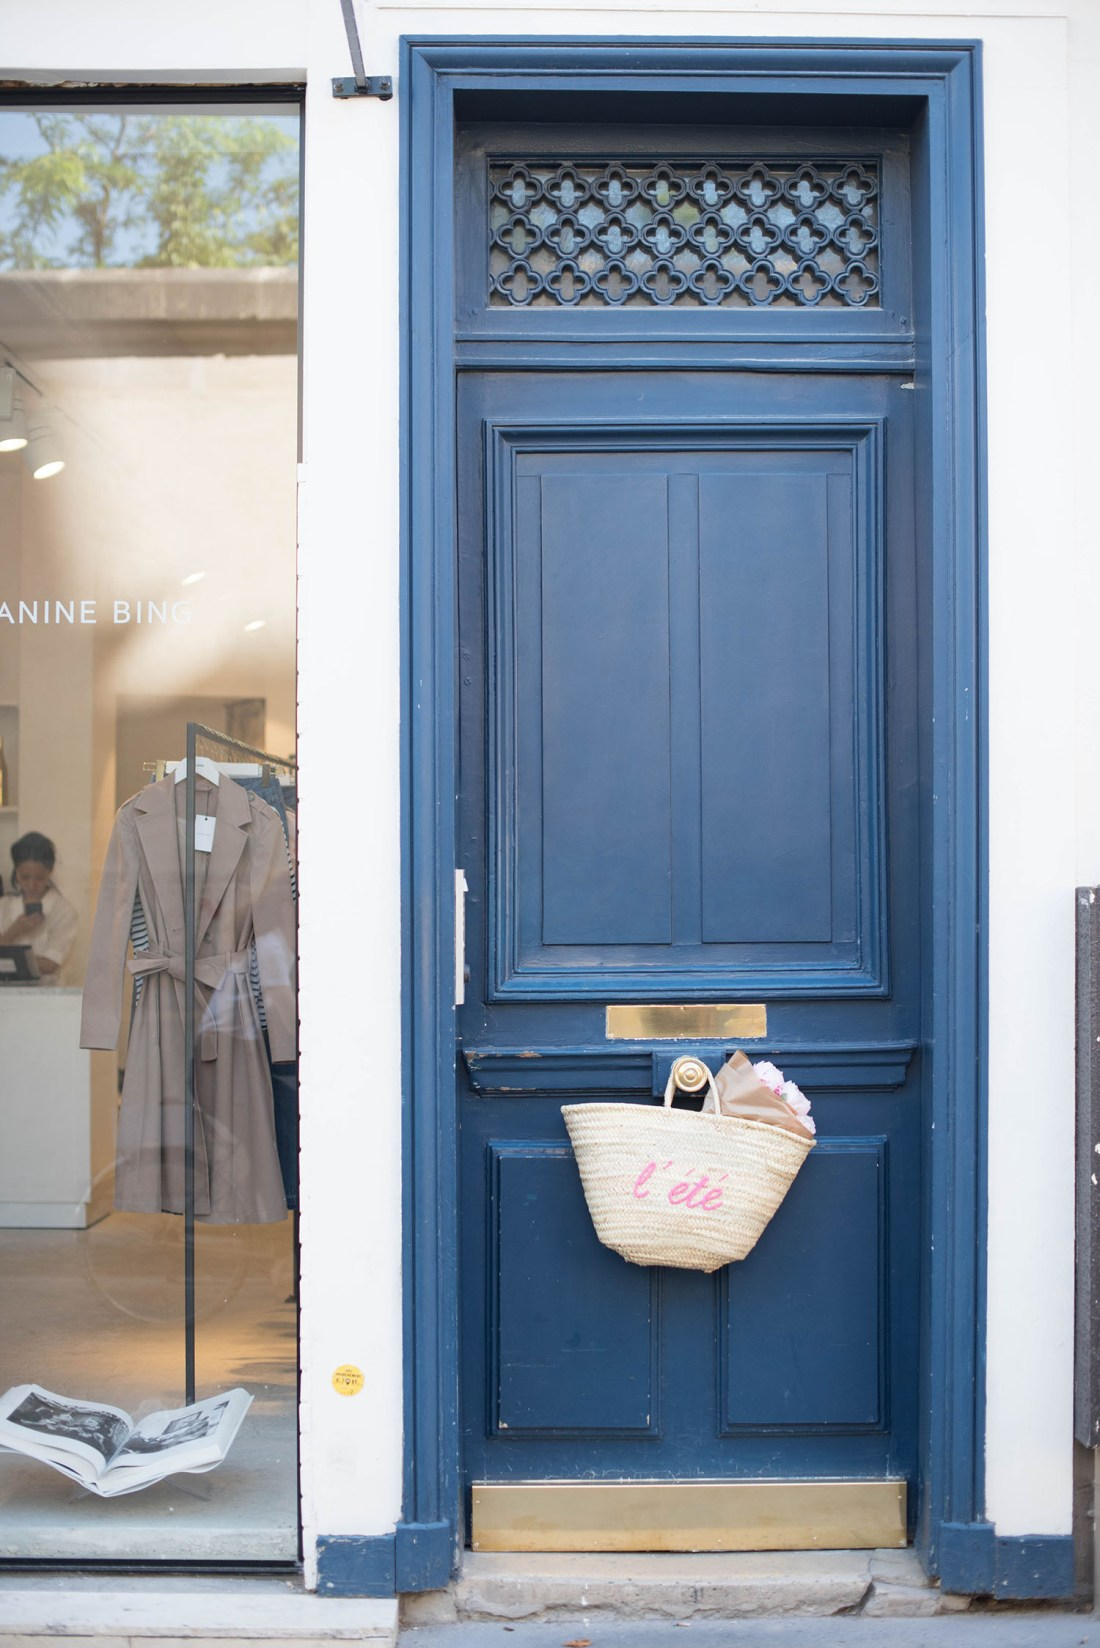 A Sezane straw tote full of pink peonies hangs on a blue door in le Marais, captured by travel blogger Cee Fardoe of Coco & Vera